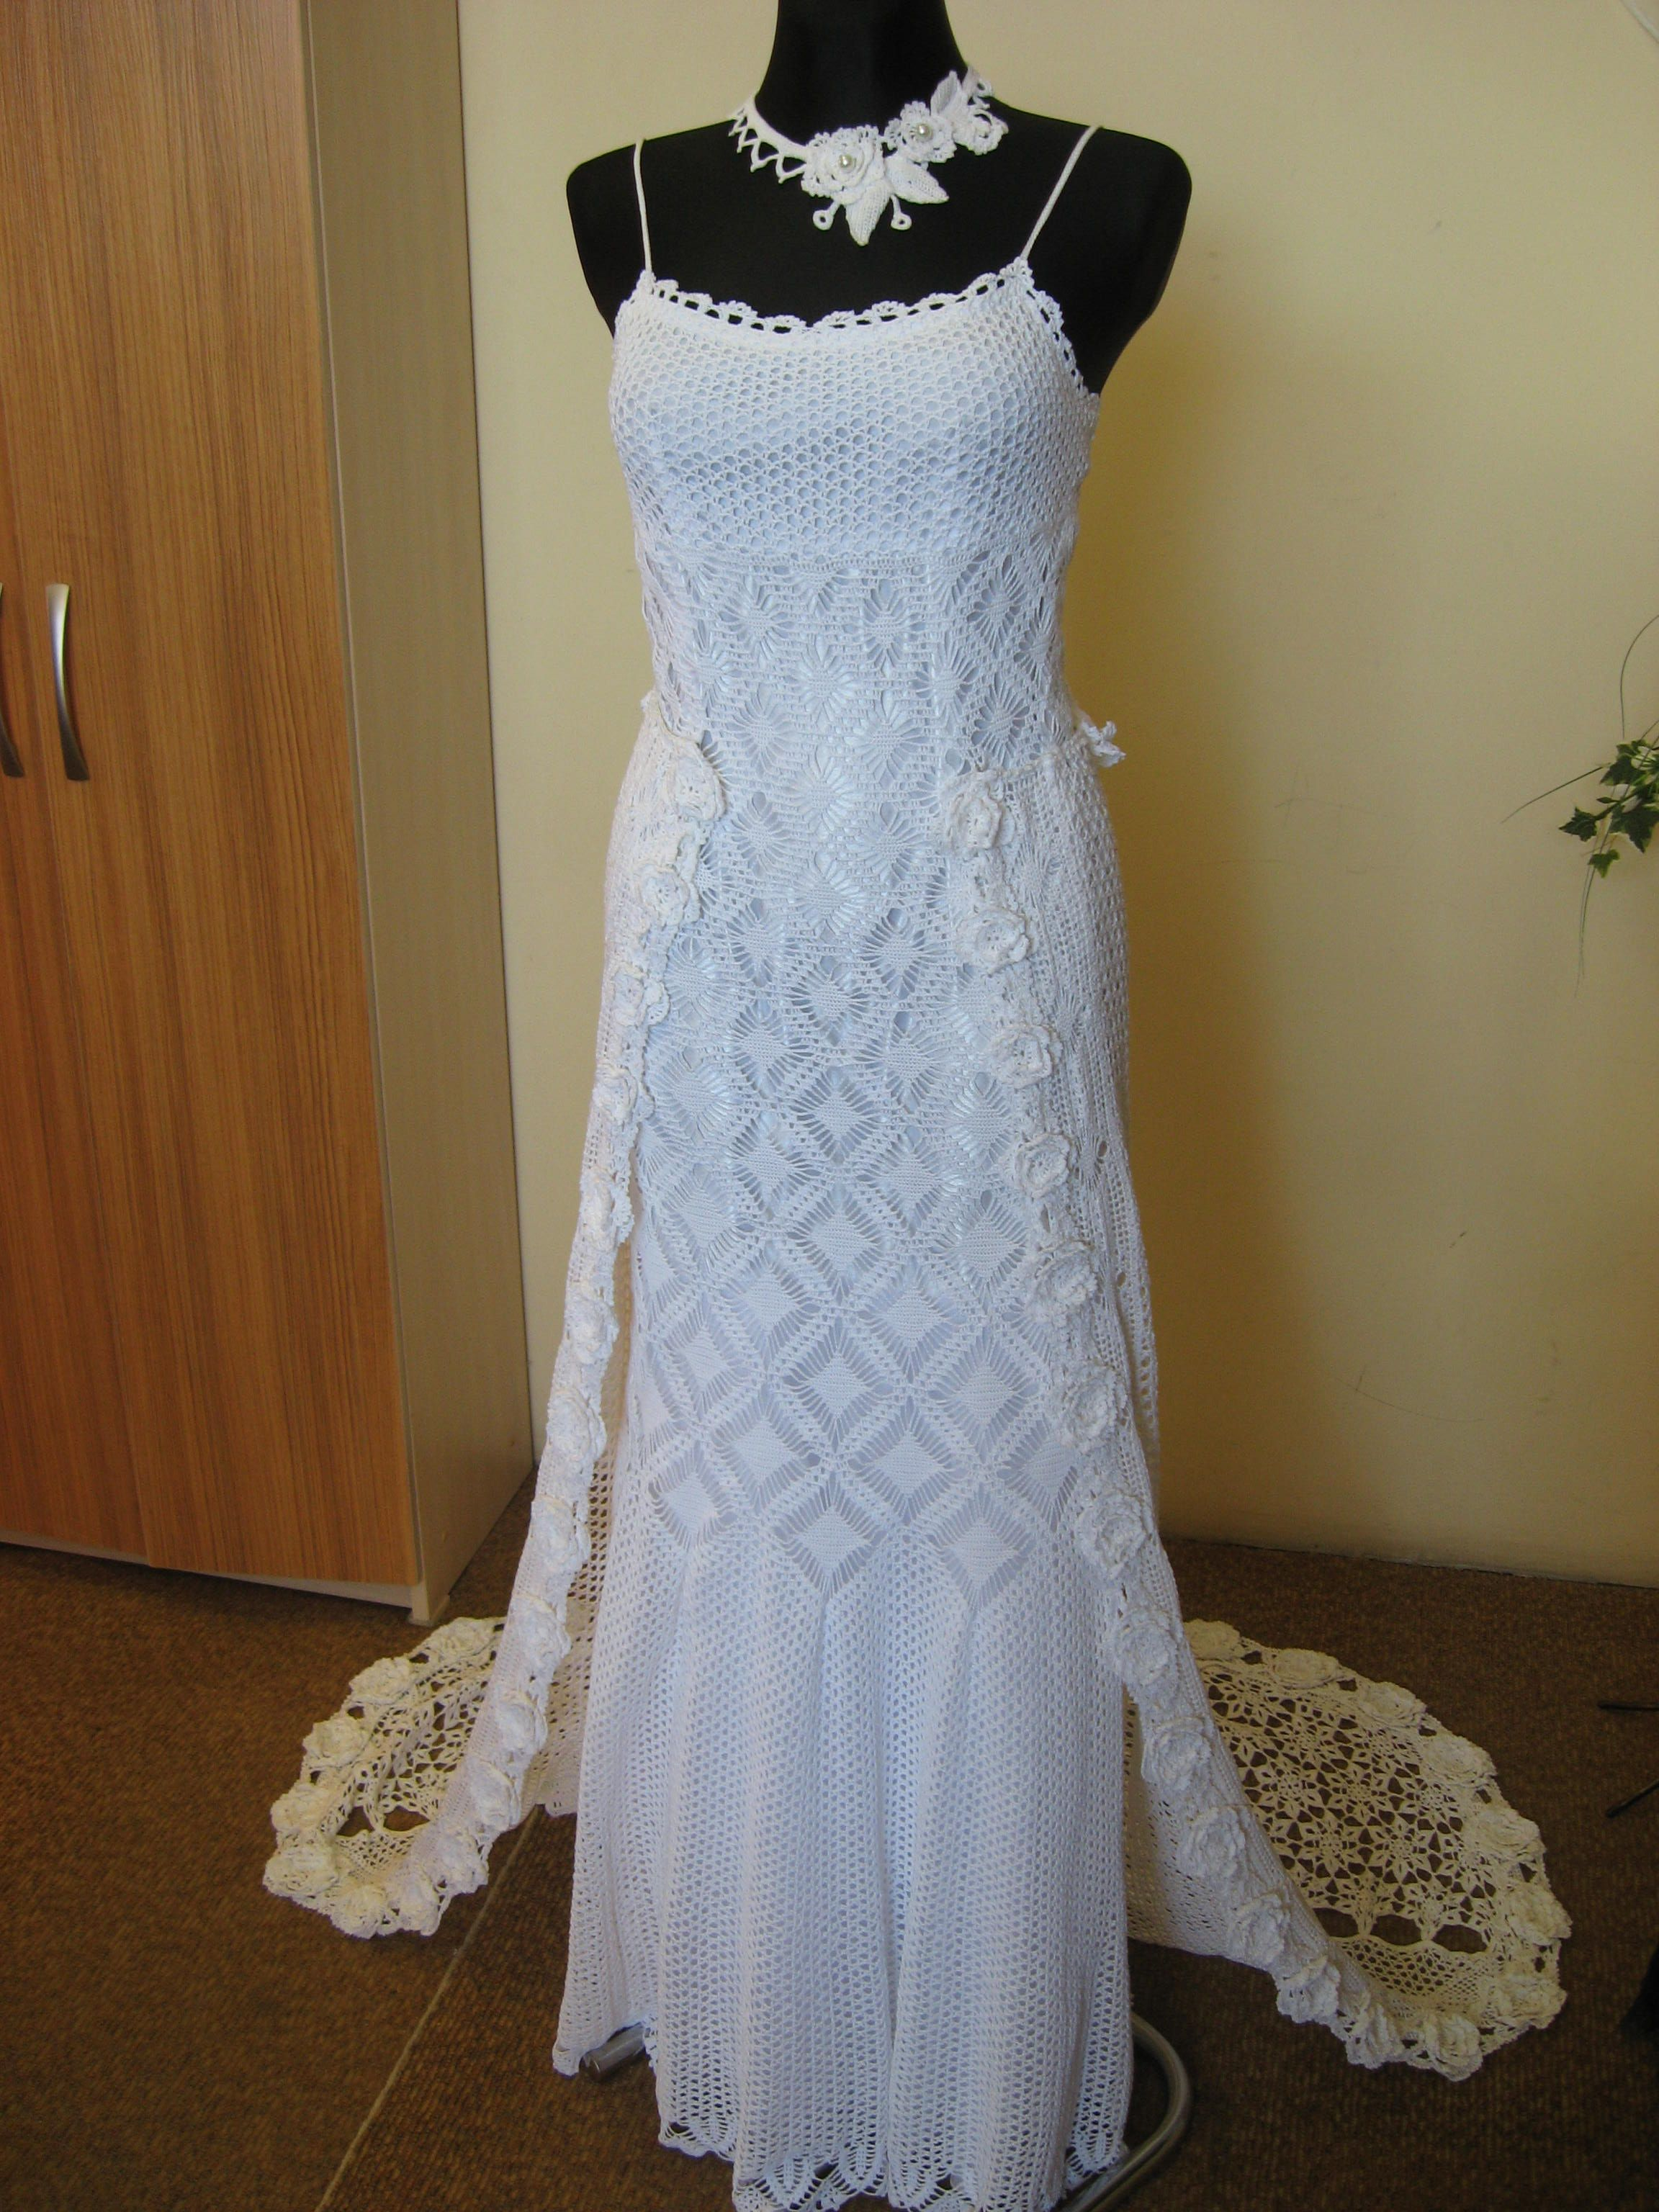 Crocheted wedding dresses | Patterns | Pinterest | Crochet ...